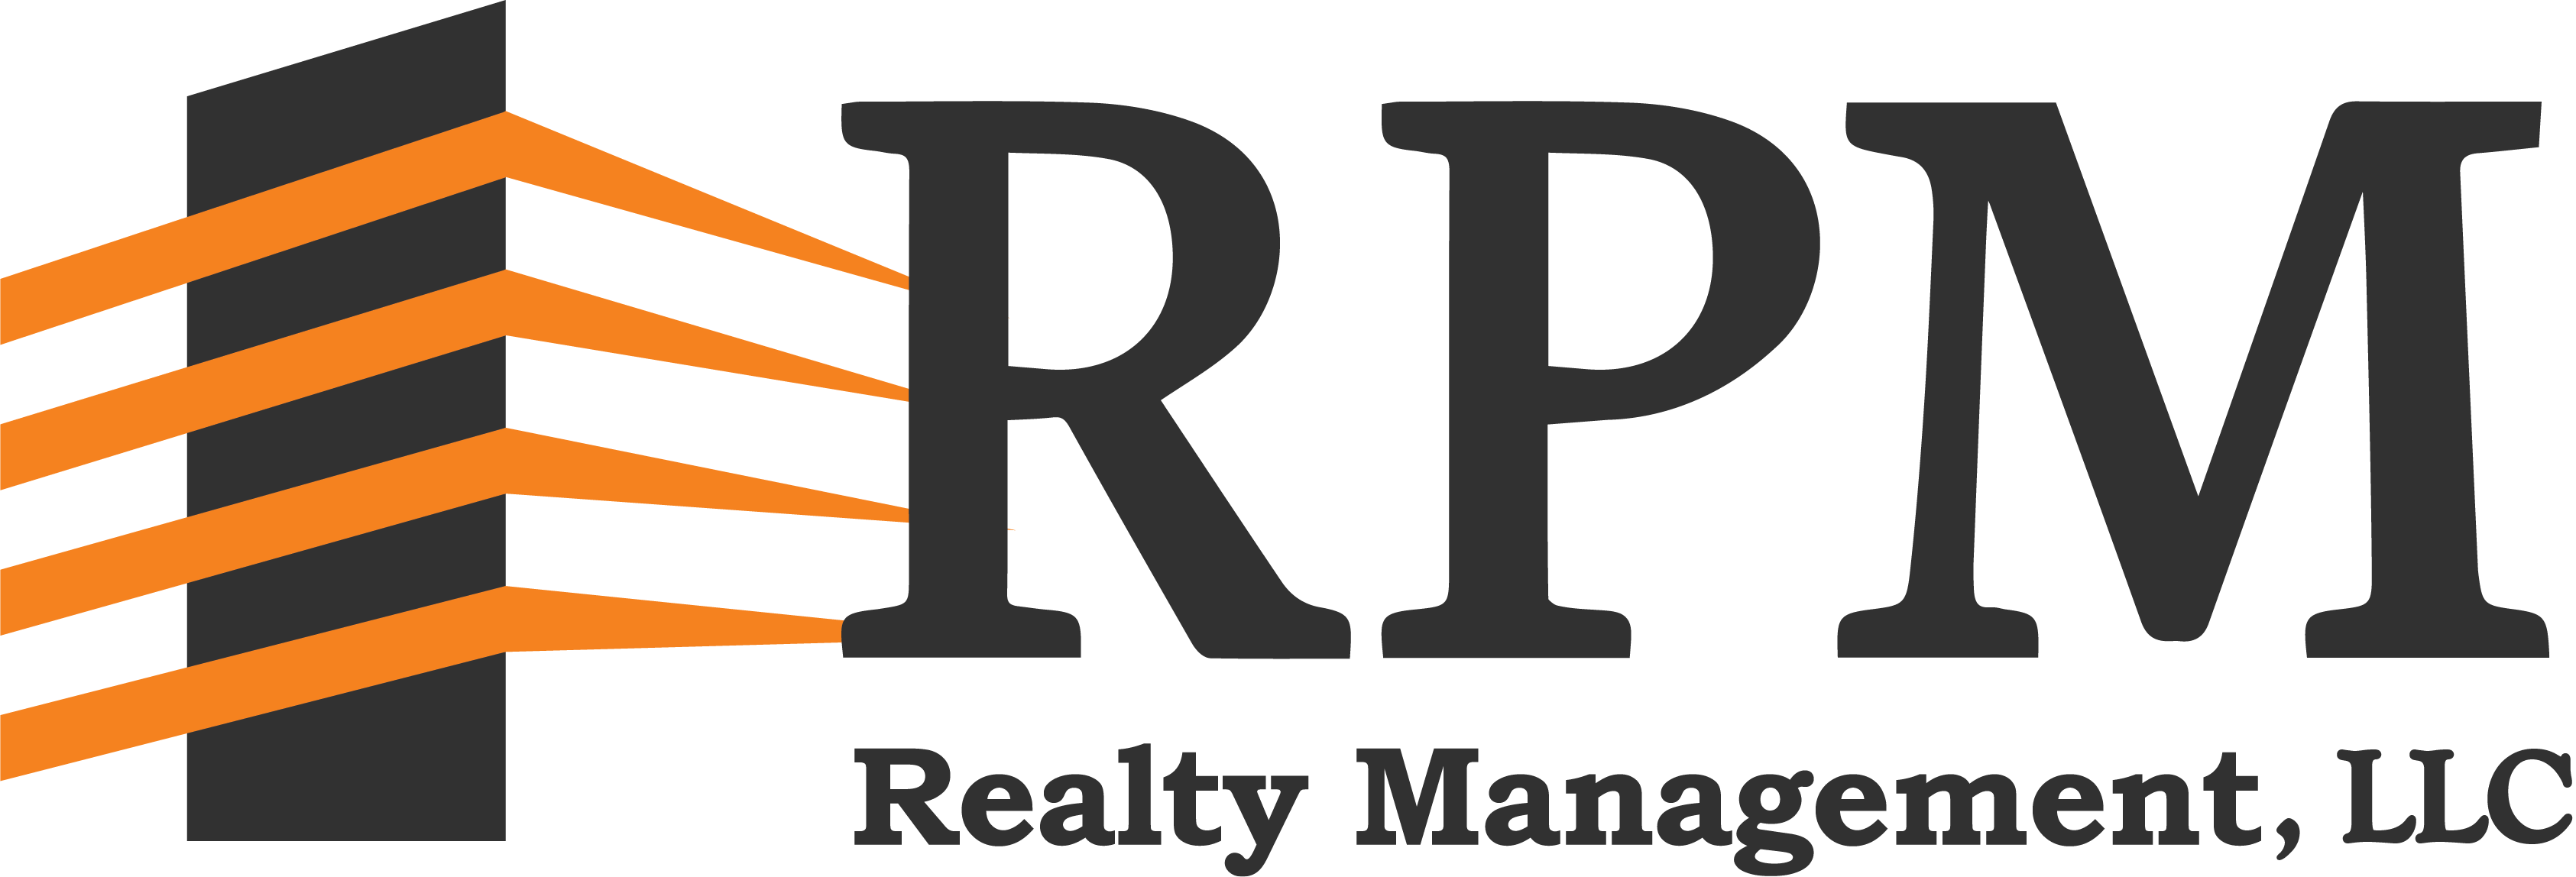 RPM Realty Management